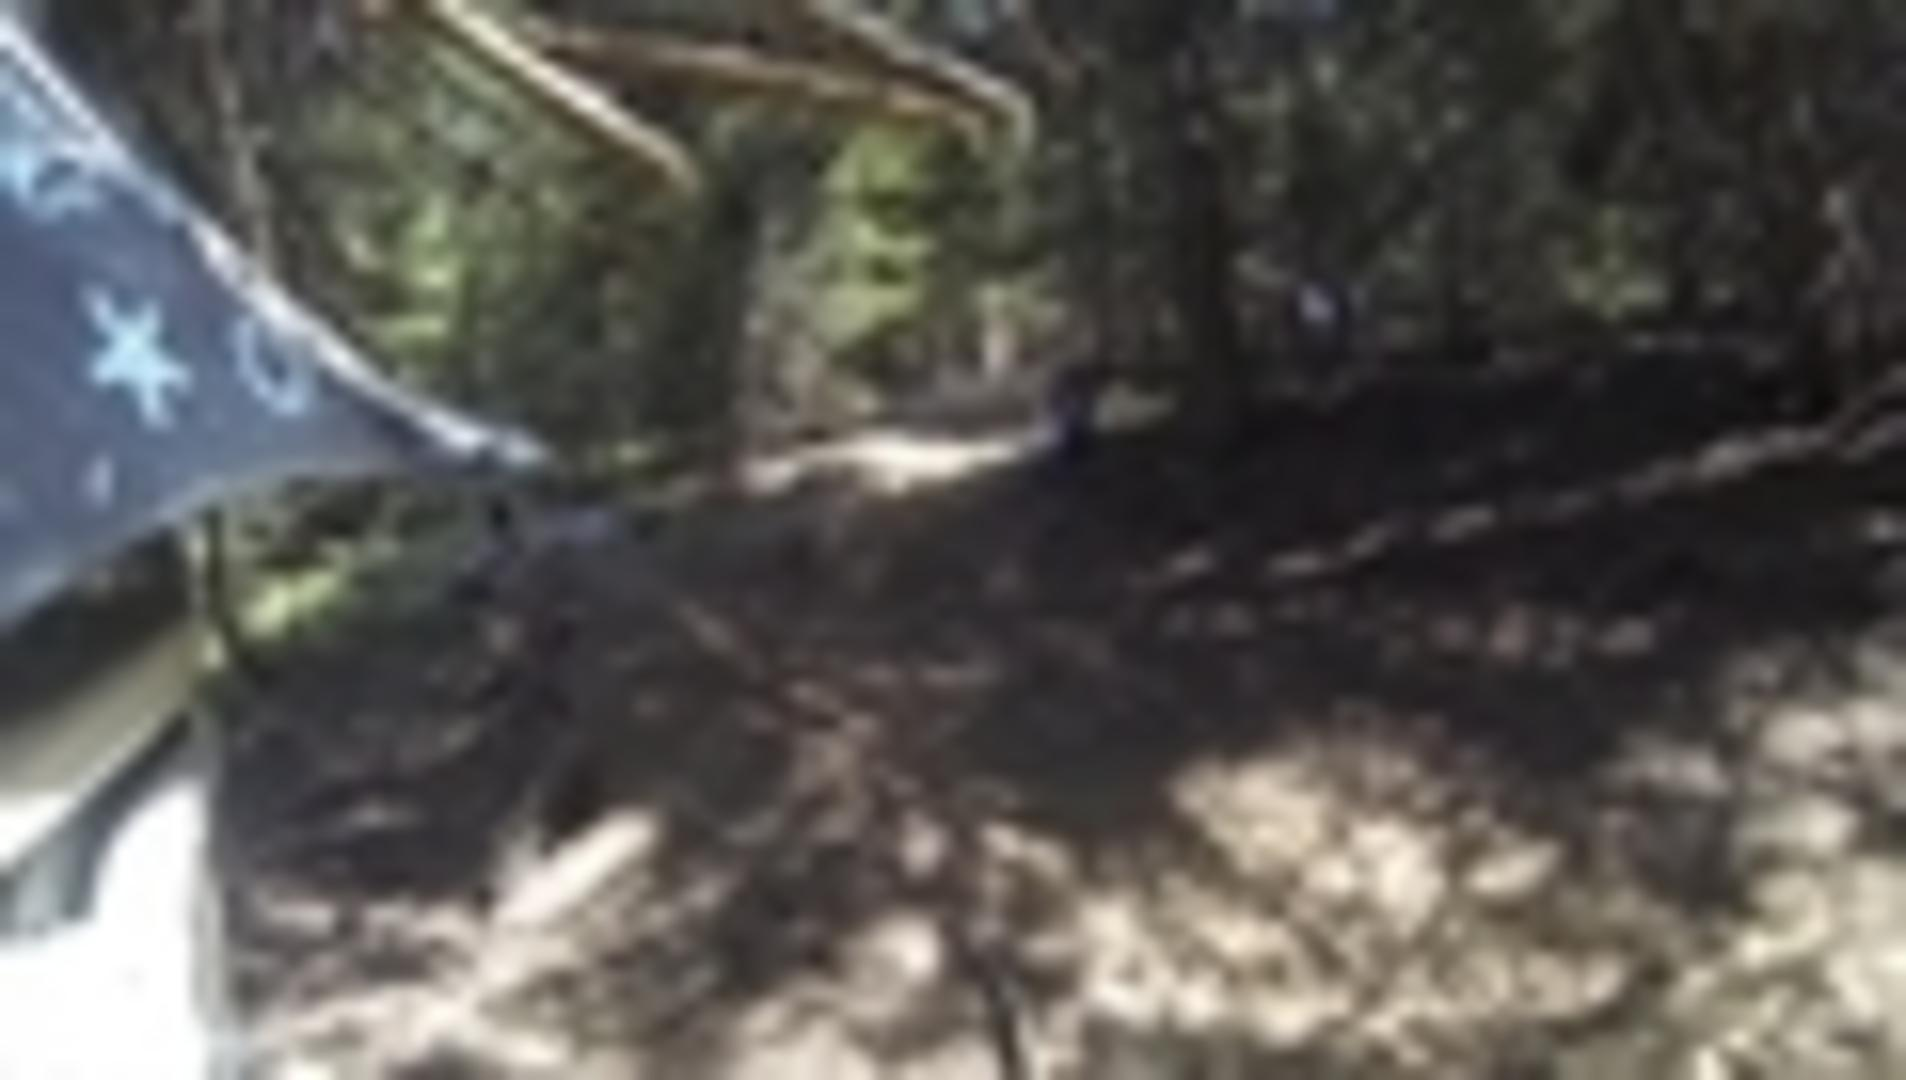 Mountain Bike Rider Loses Control and Smashes into Tree